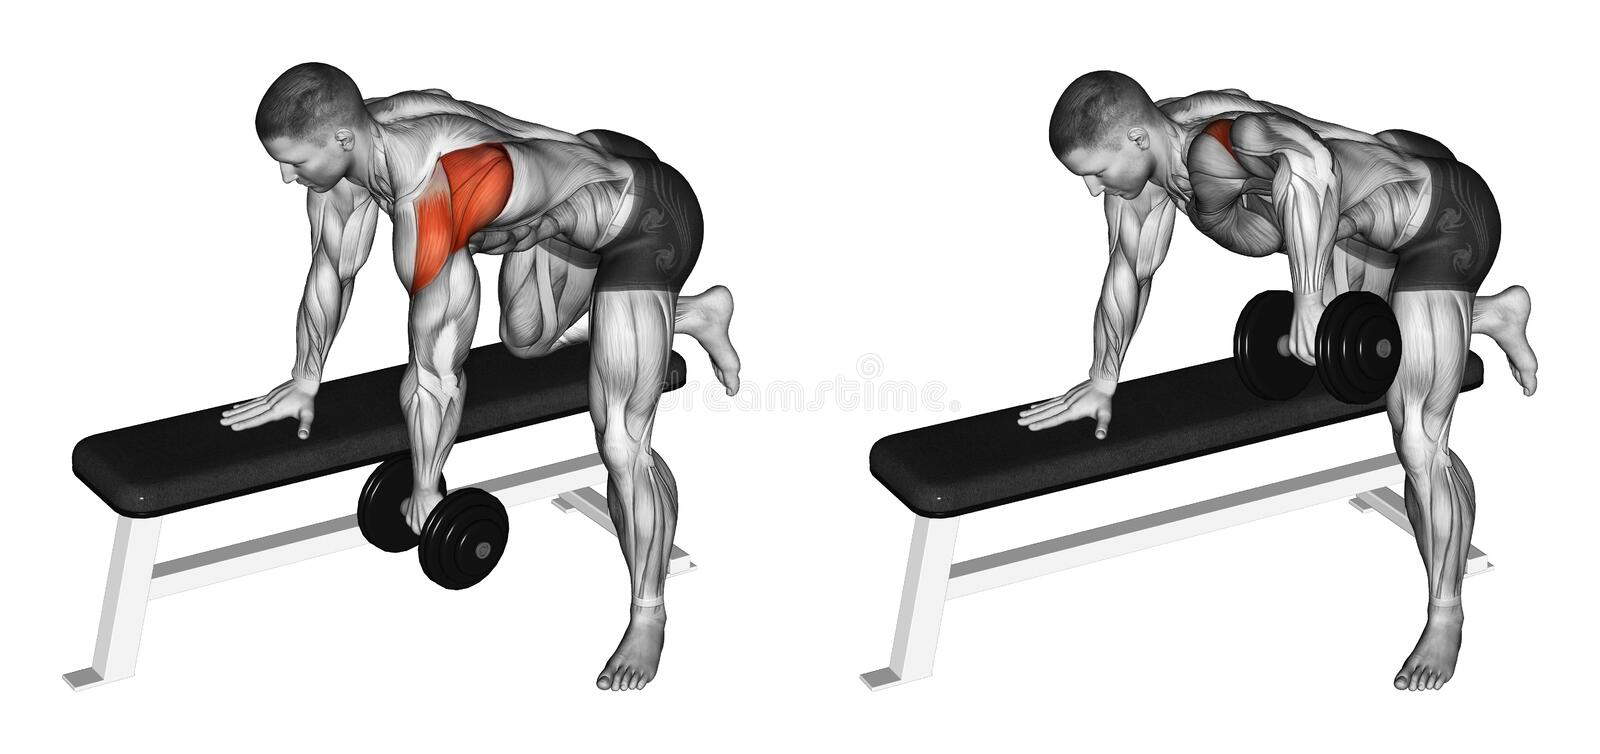 Exercising. Thrust dumbbells in the slope rear deltoid. Thrust dumbbells in the slope rear deltoid. Exercising for bodybuilding. Target muscles are marked in red vector illustration